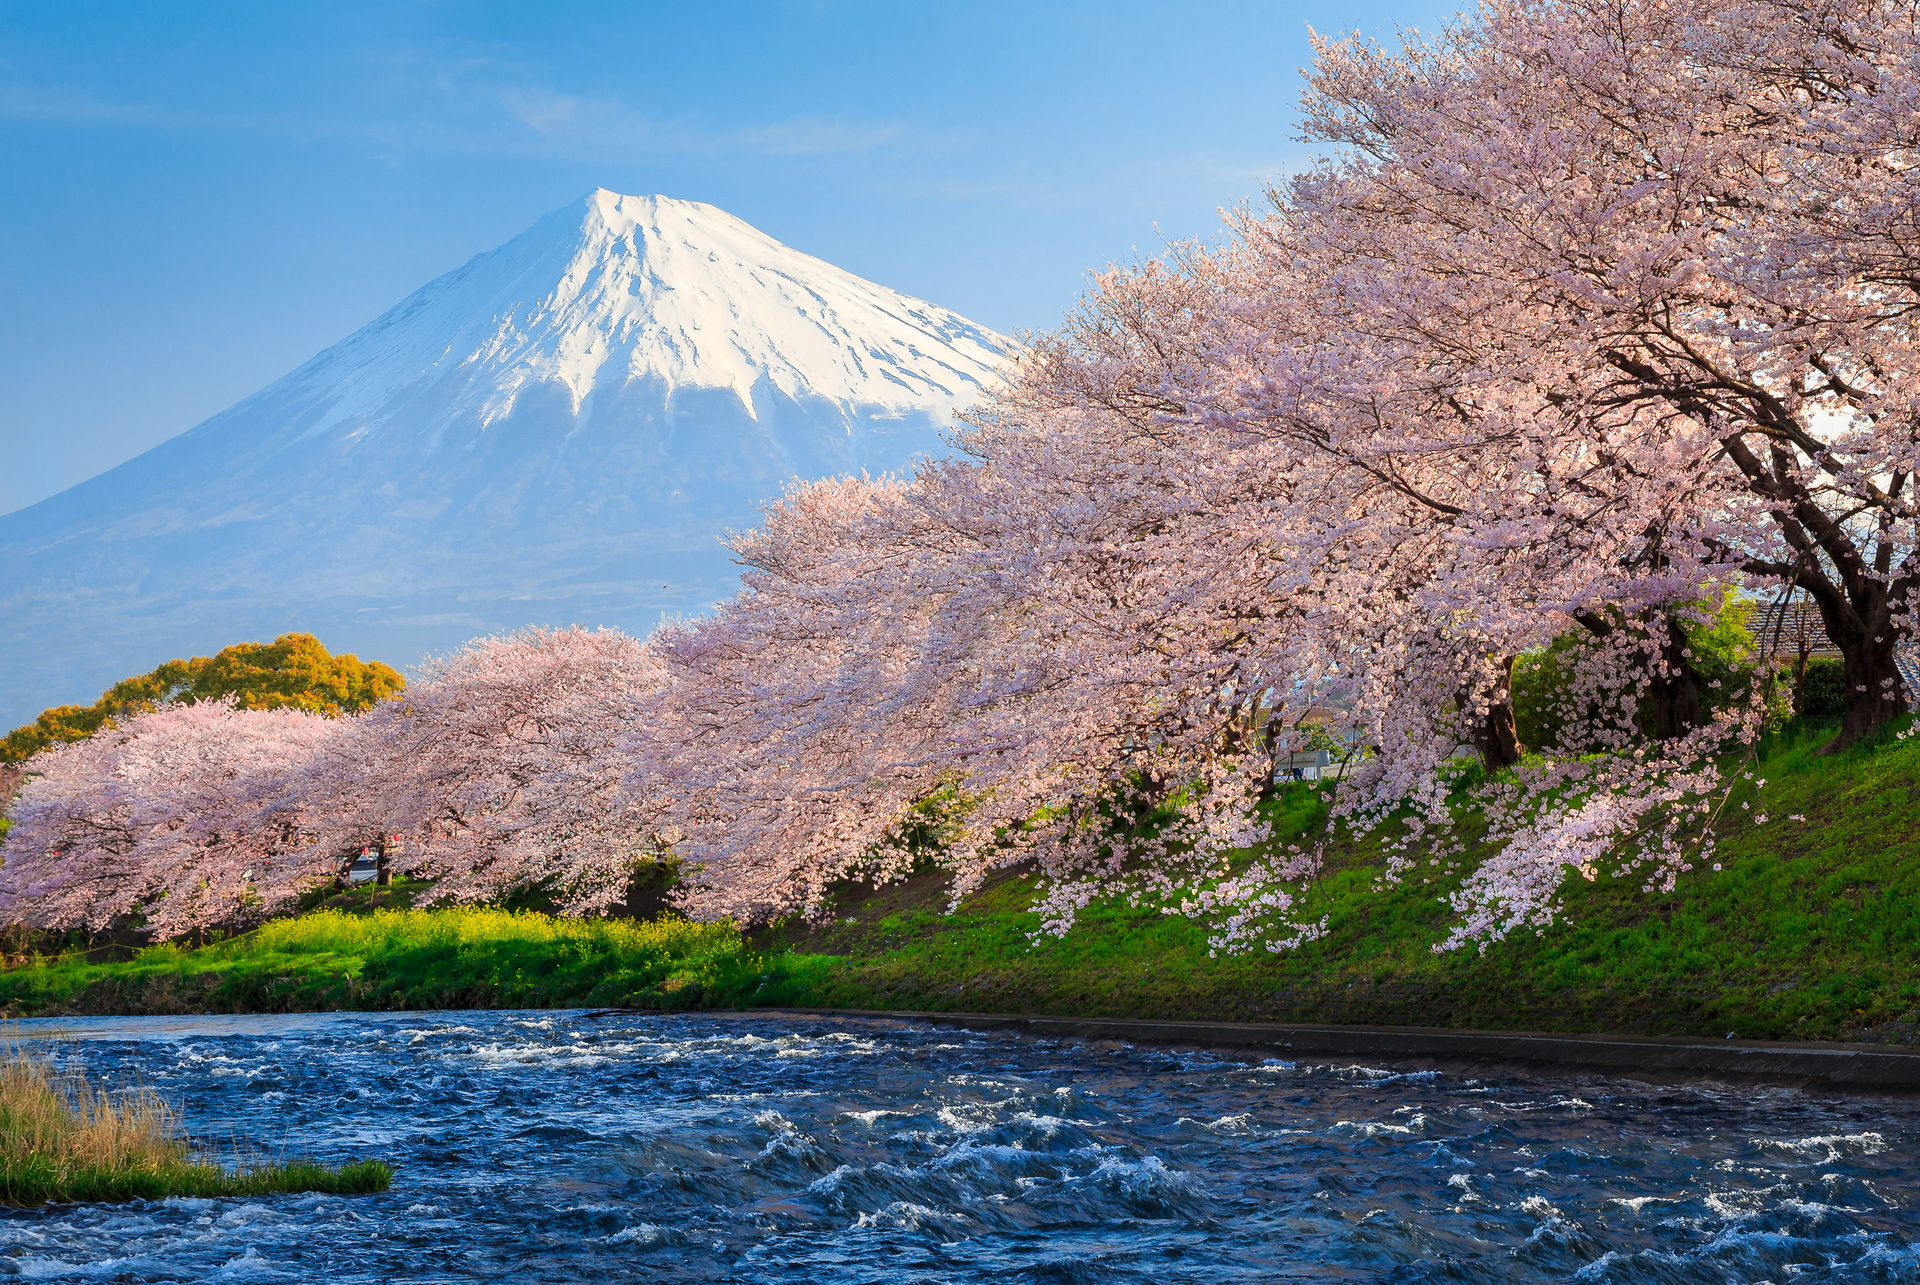 Mount Fuji HD Wallpaper Background Image 1920x1285 ID609072 1920x1285